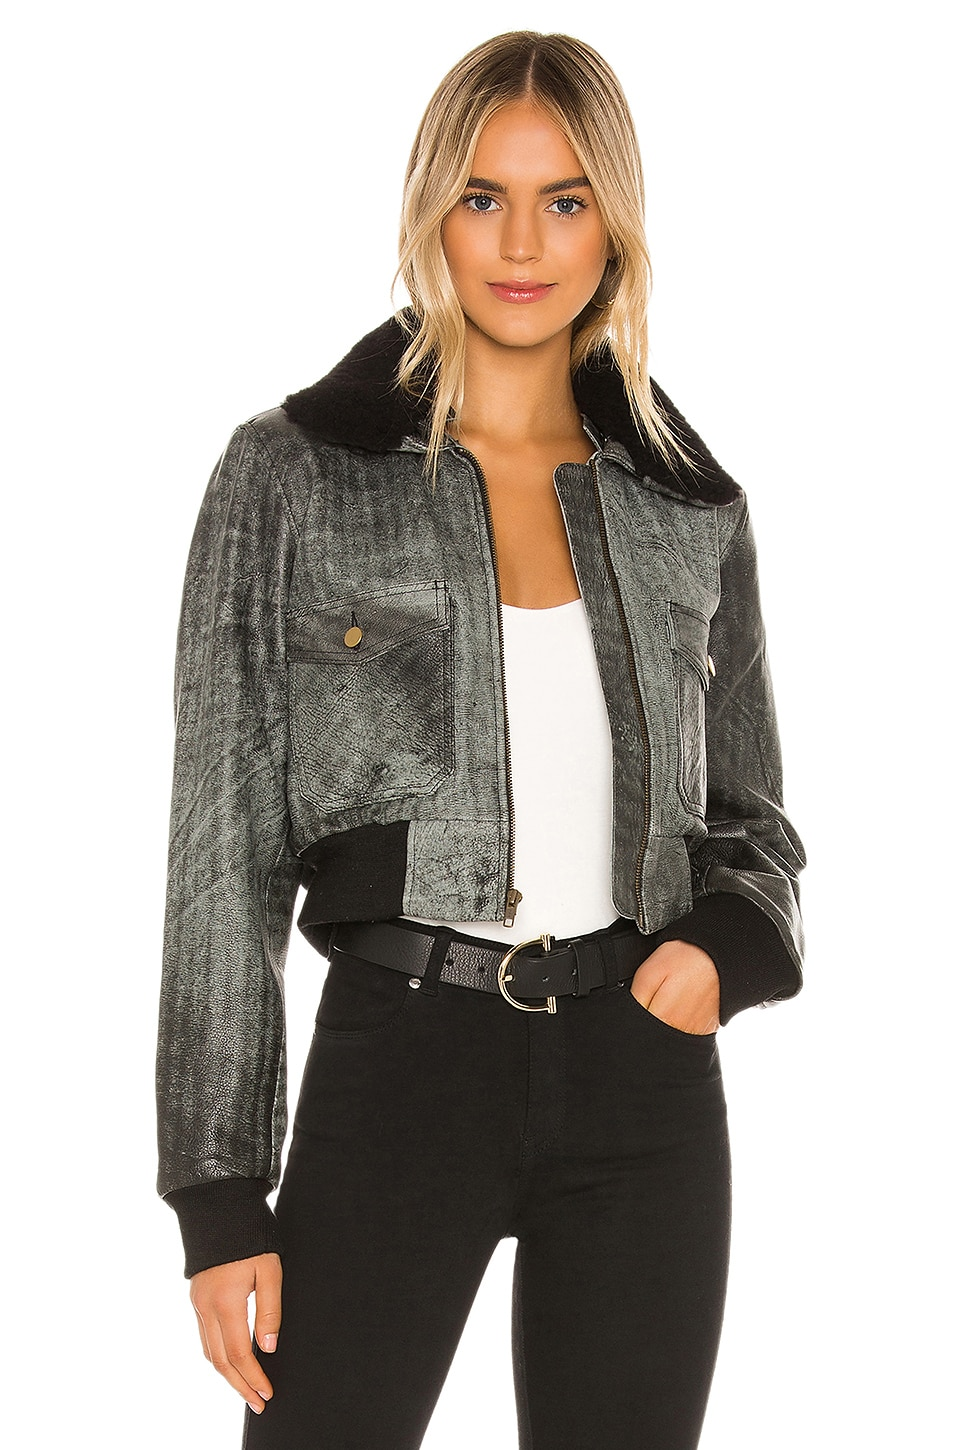 Understated Leather Spirit Bomber Jacket With Shearling Collar in Distressed Black